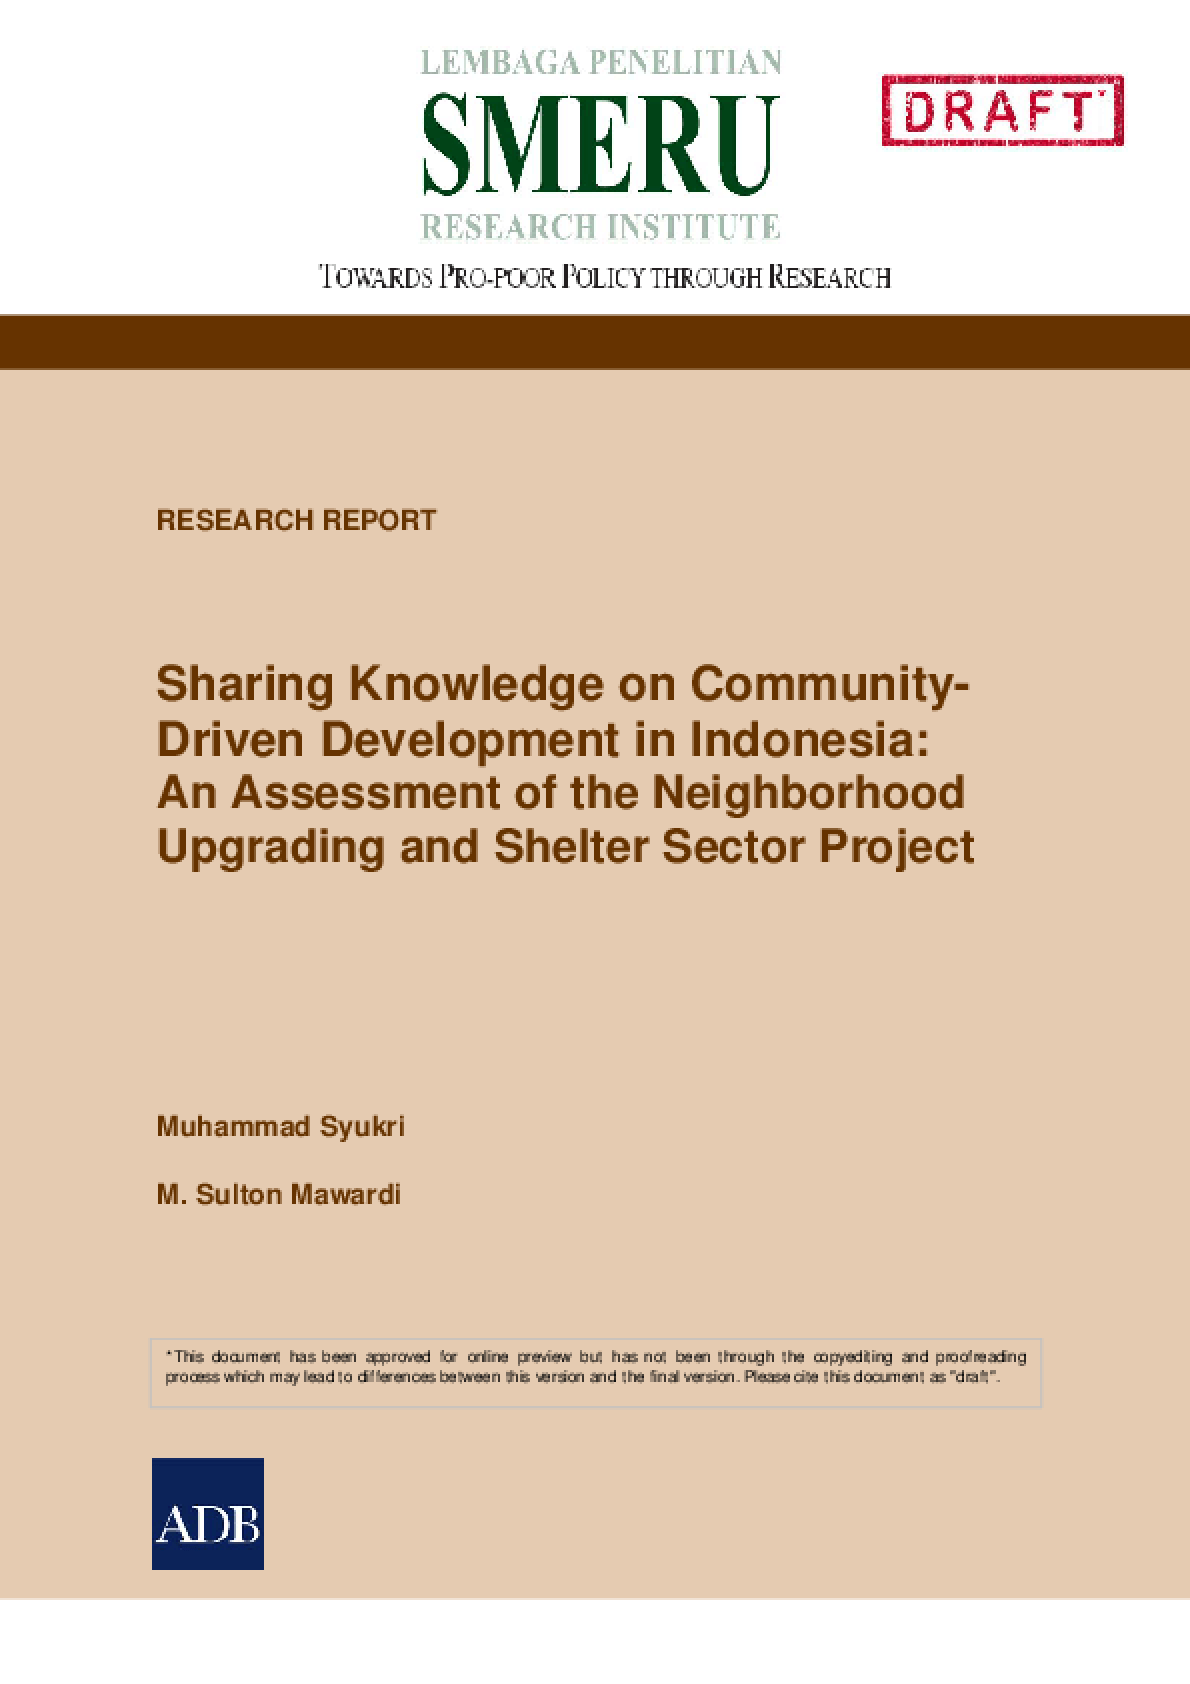 Sharing Knowledge on Community-Driven Development in Indonesia: An Assessment of the Neighborhood Upgrading and Shelter Sector Project